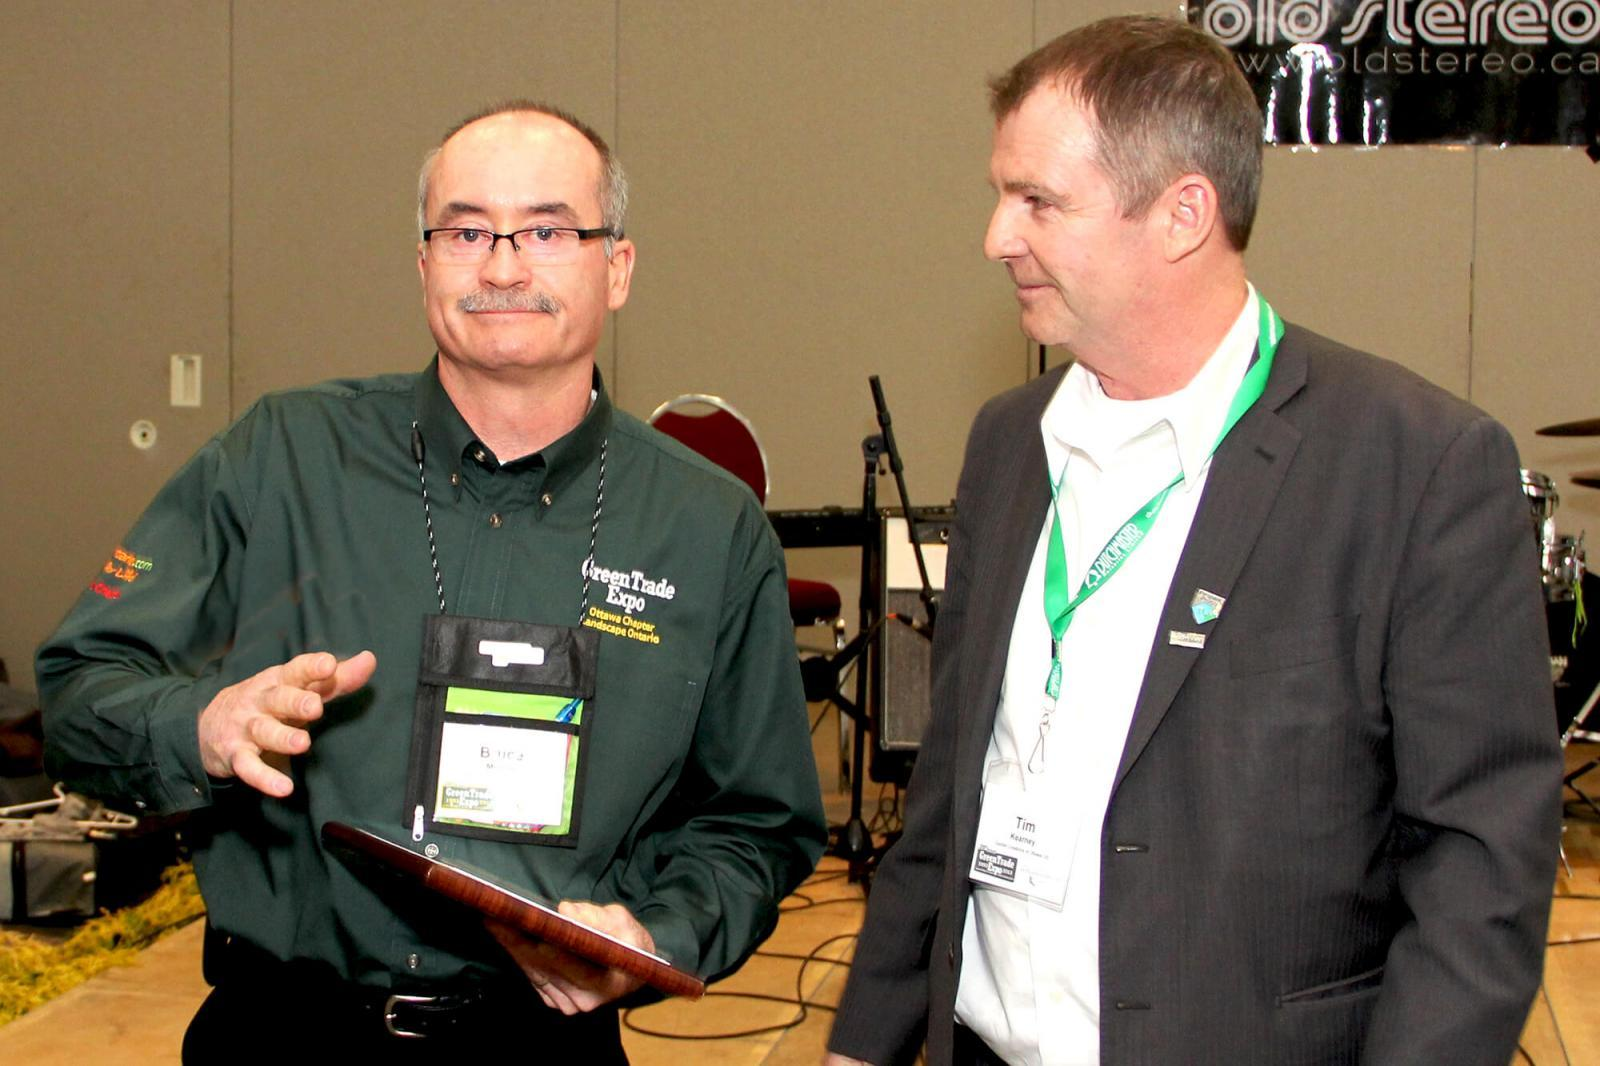 Bruce Morton of Greenscape Water Systems, left, received the distinguished member award from Tim Kearney of Garden Creations.The award was presented to honour Morton's dedication towards GreenTrade over the show's 20-year history.